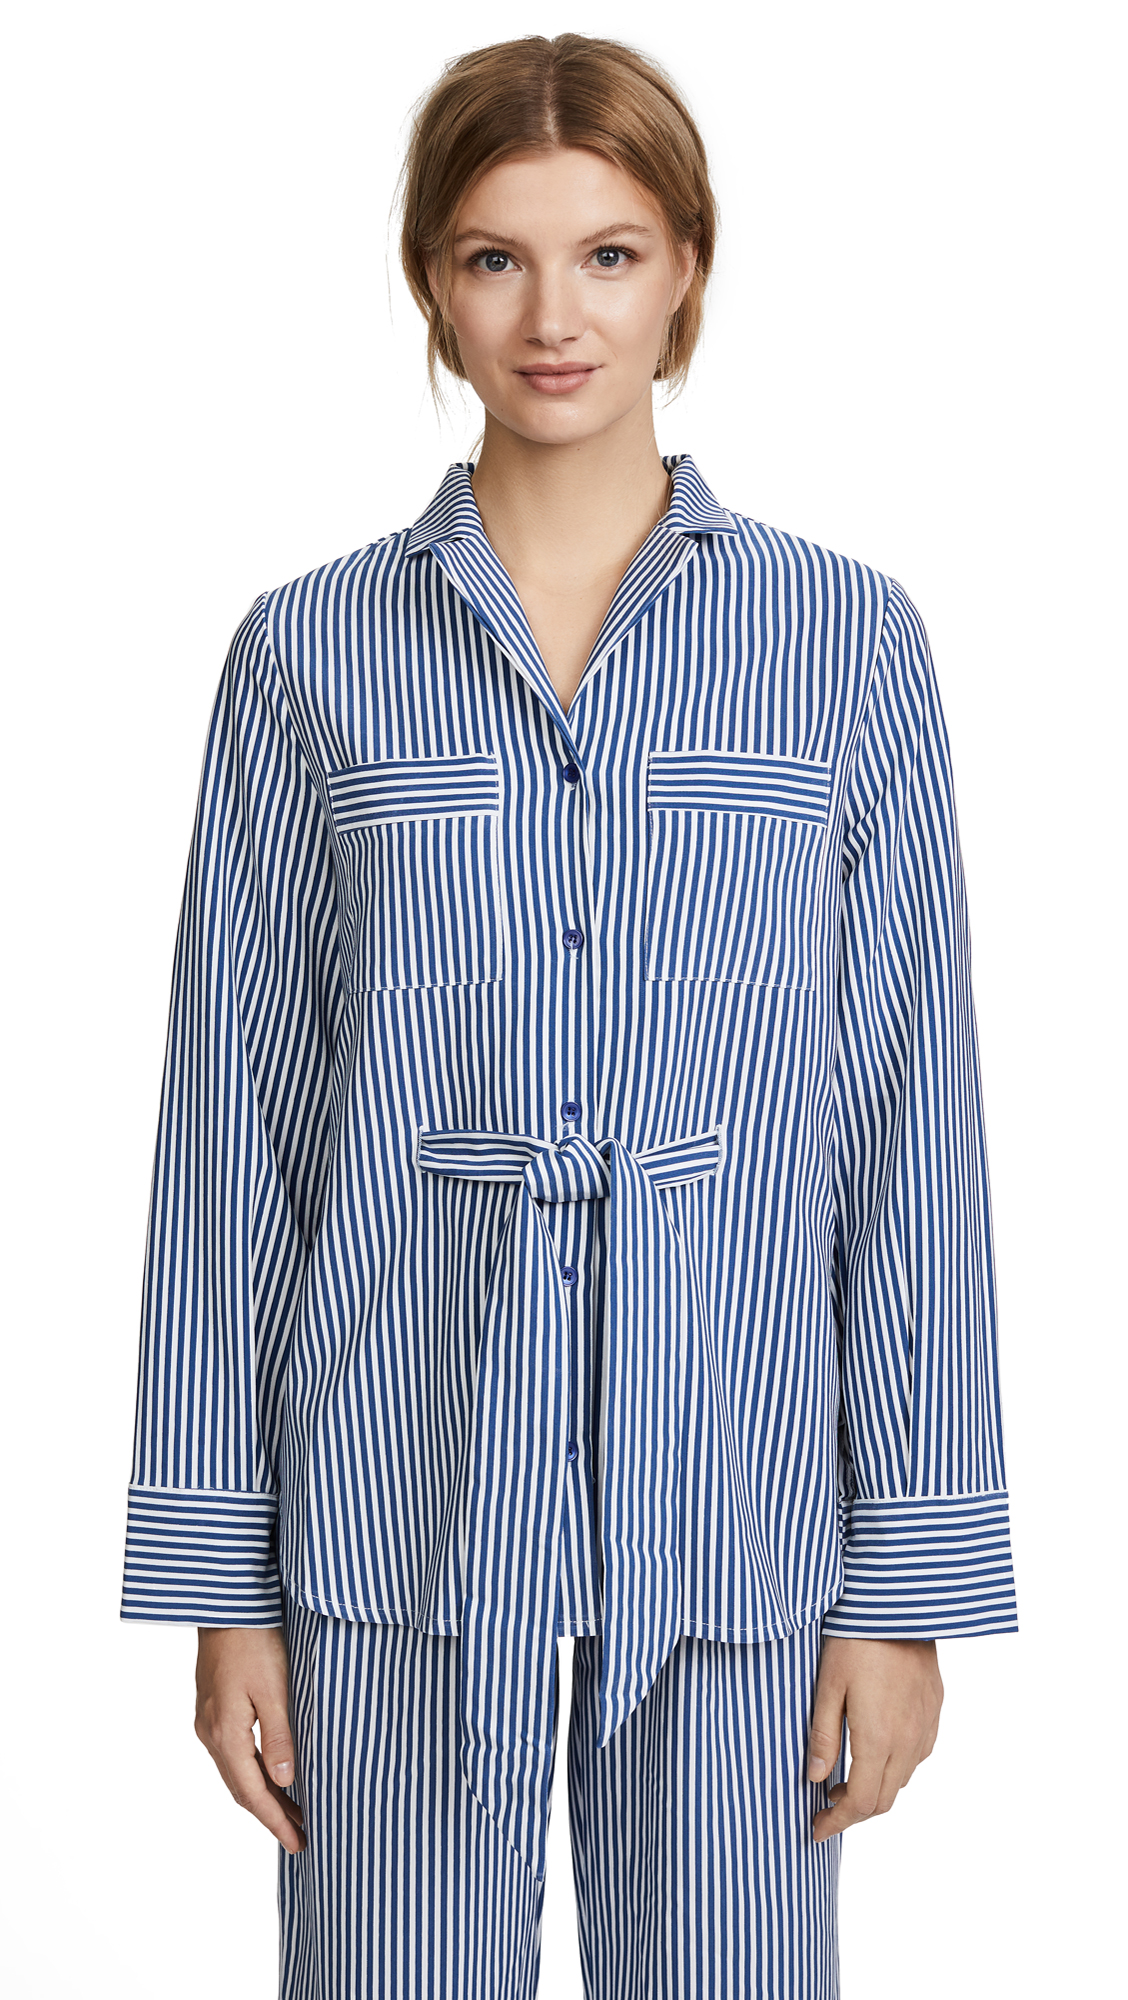 STYLEKEEPERS Sleeping Shirt Blazer - Striped Blue